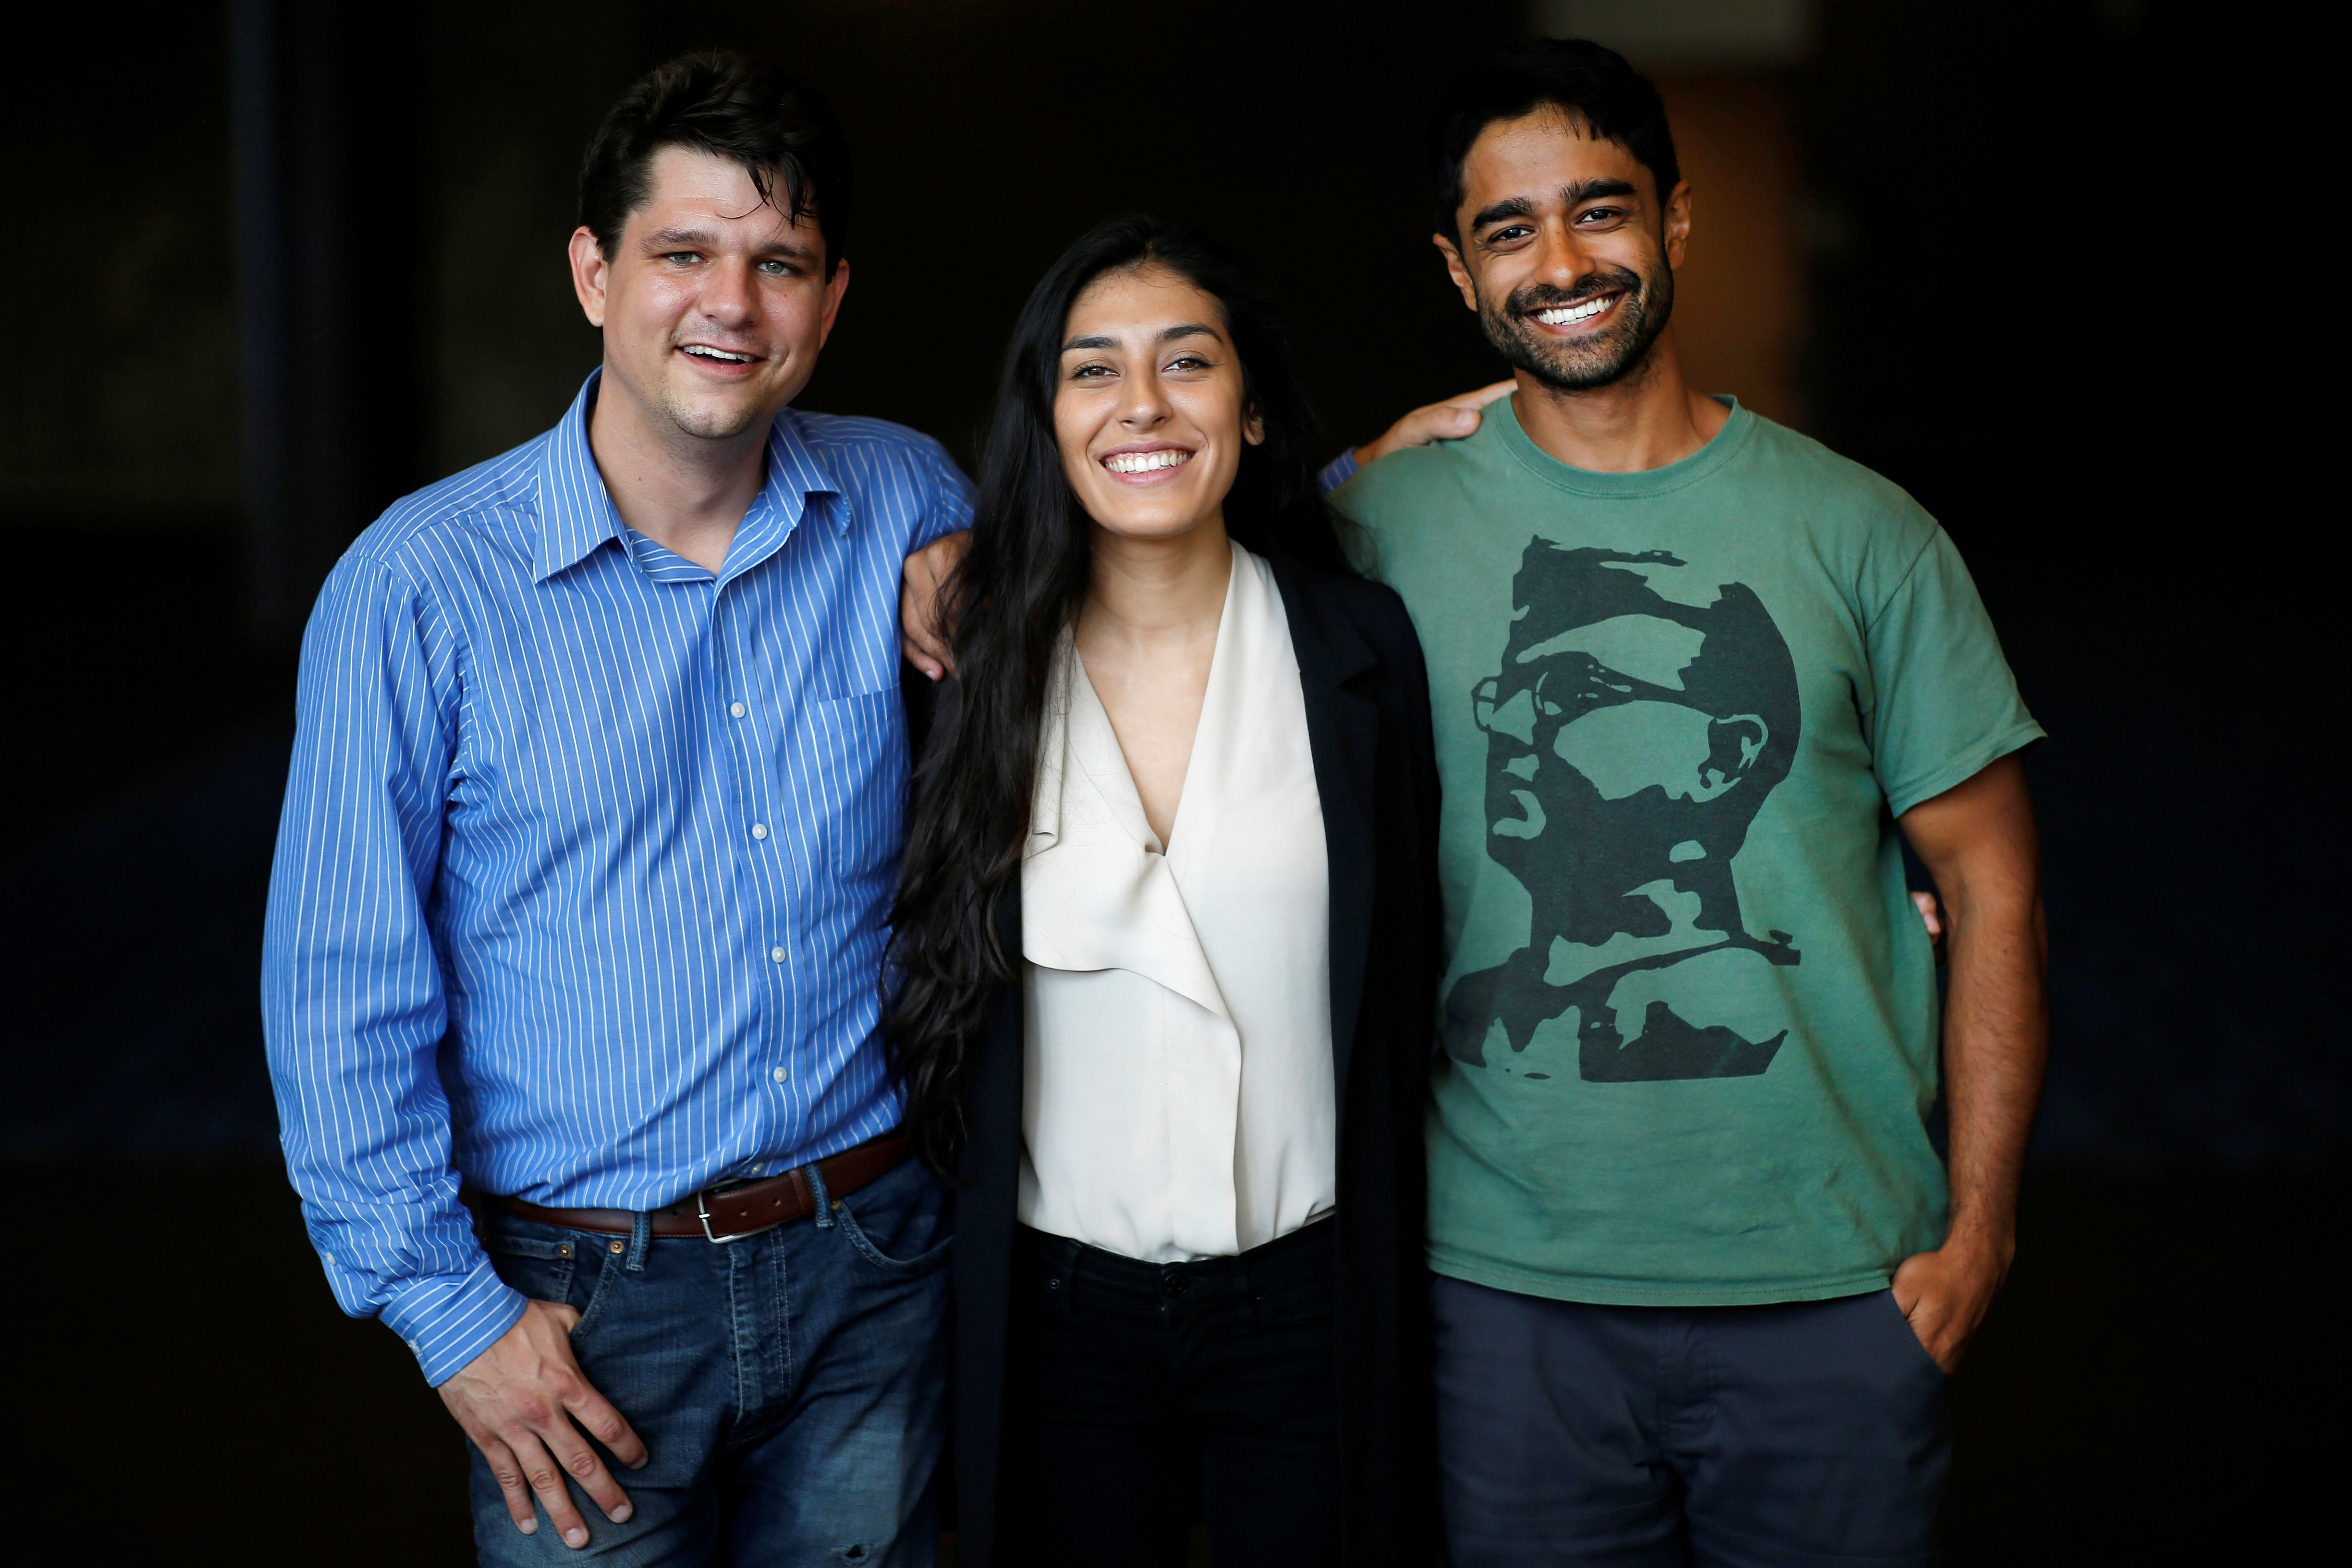 Corbin Trent (L), Alexandra Rojas (C), and Saikat Chakrabarti of Justice Democrats pose for a photo at the Netroots Nation annual conference for political progressives in New Orleans, Louisiana, U.S., August 4, 2018. Picture taken August 4, 2018. To match Special Report USA-ELECTION/PROGRESSIVES REUTERS/Jonathan Bachman